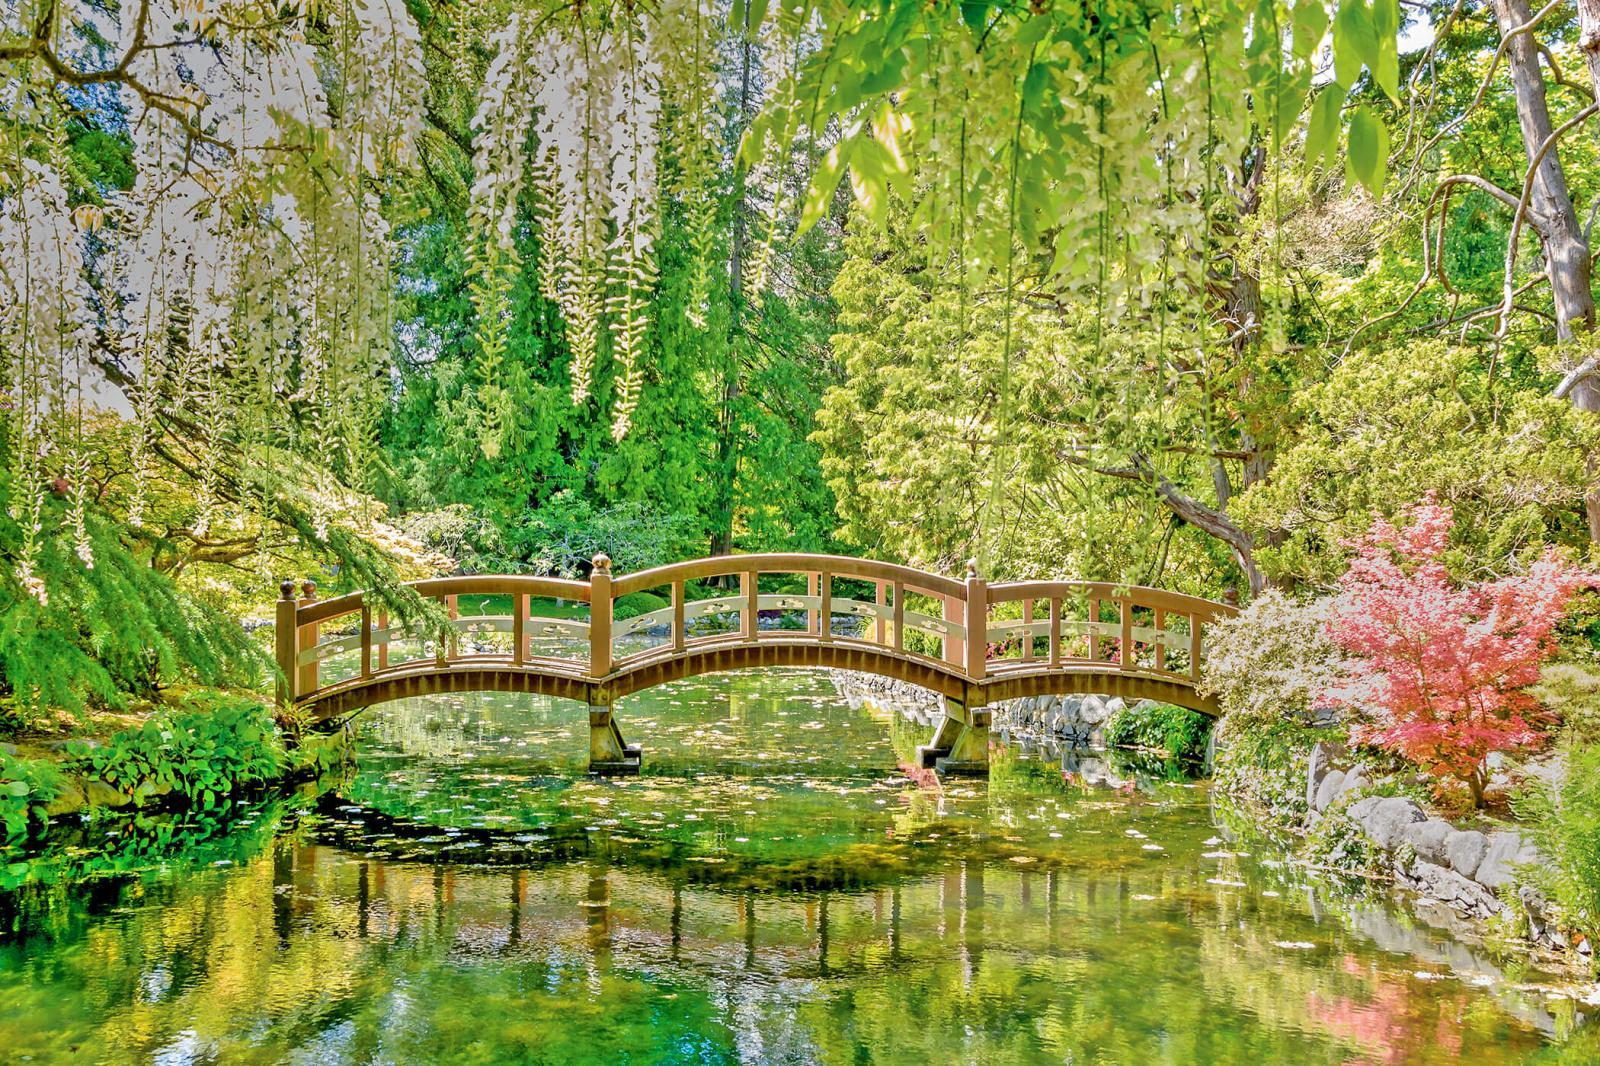 A Japanese garden bridge connects some of the more than 15 km of trails in Hatley Gardens.